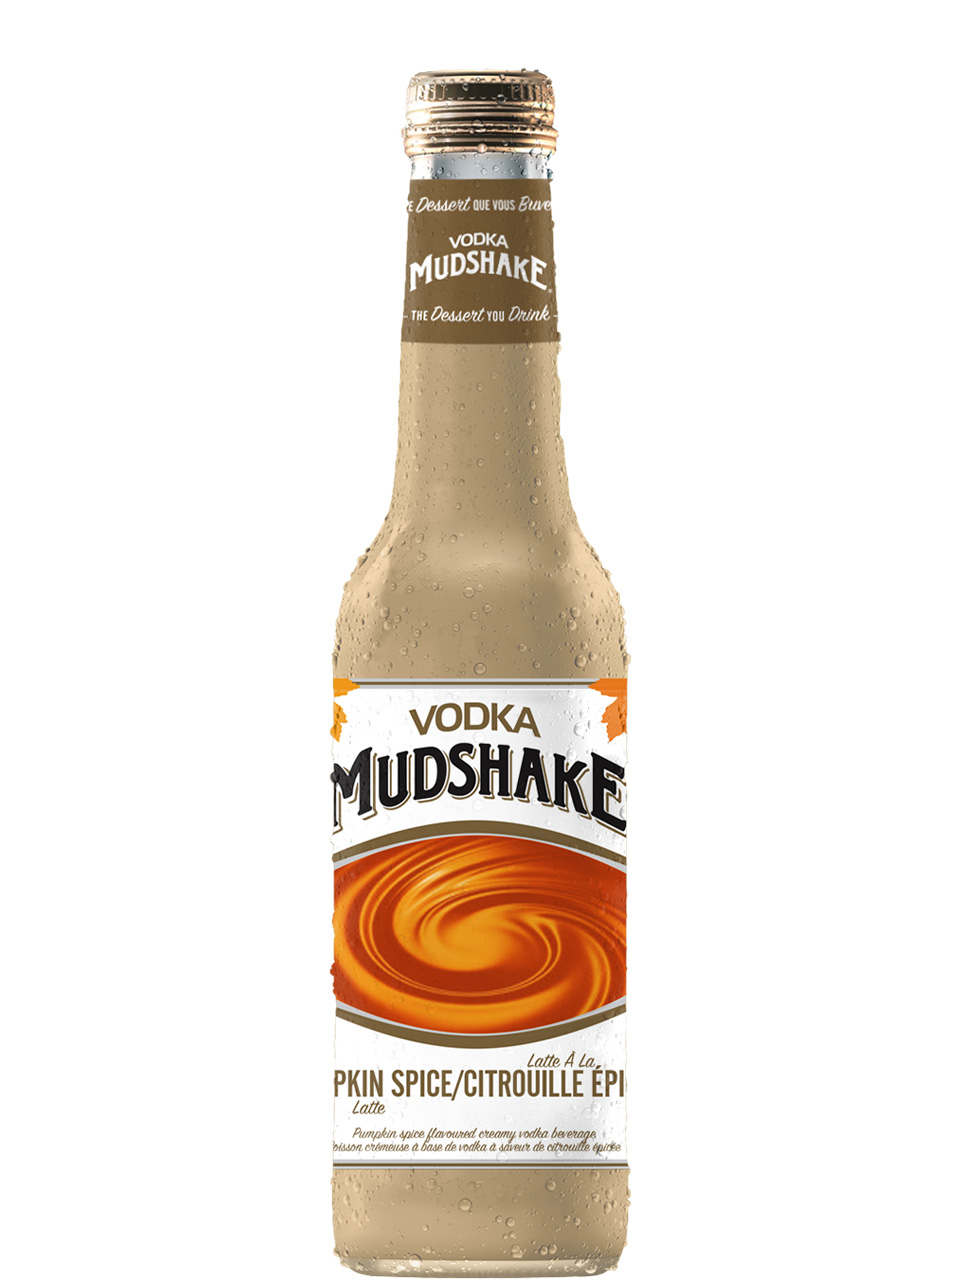 Vodka Mudshake Pumpkin Spice Latte